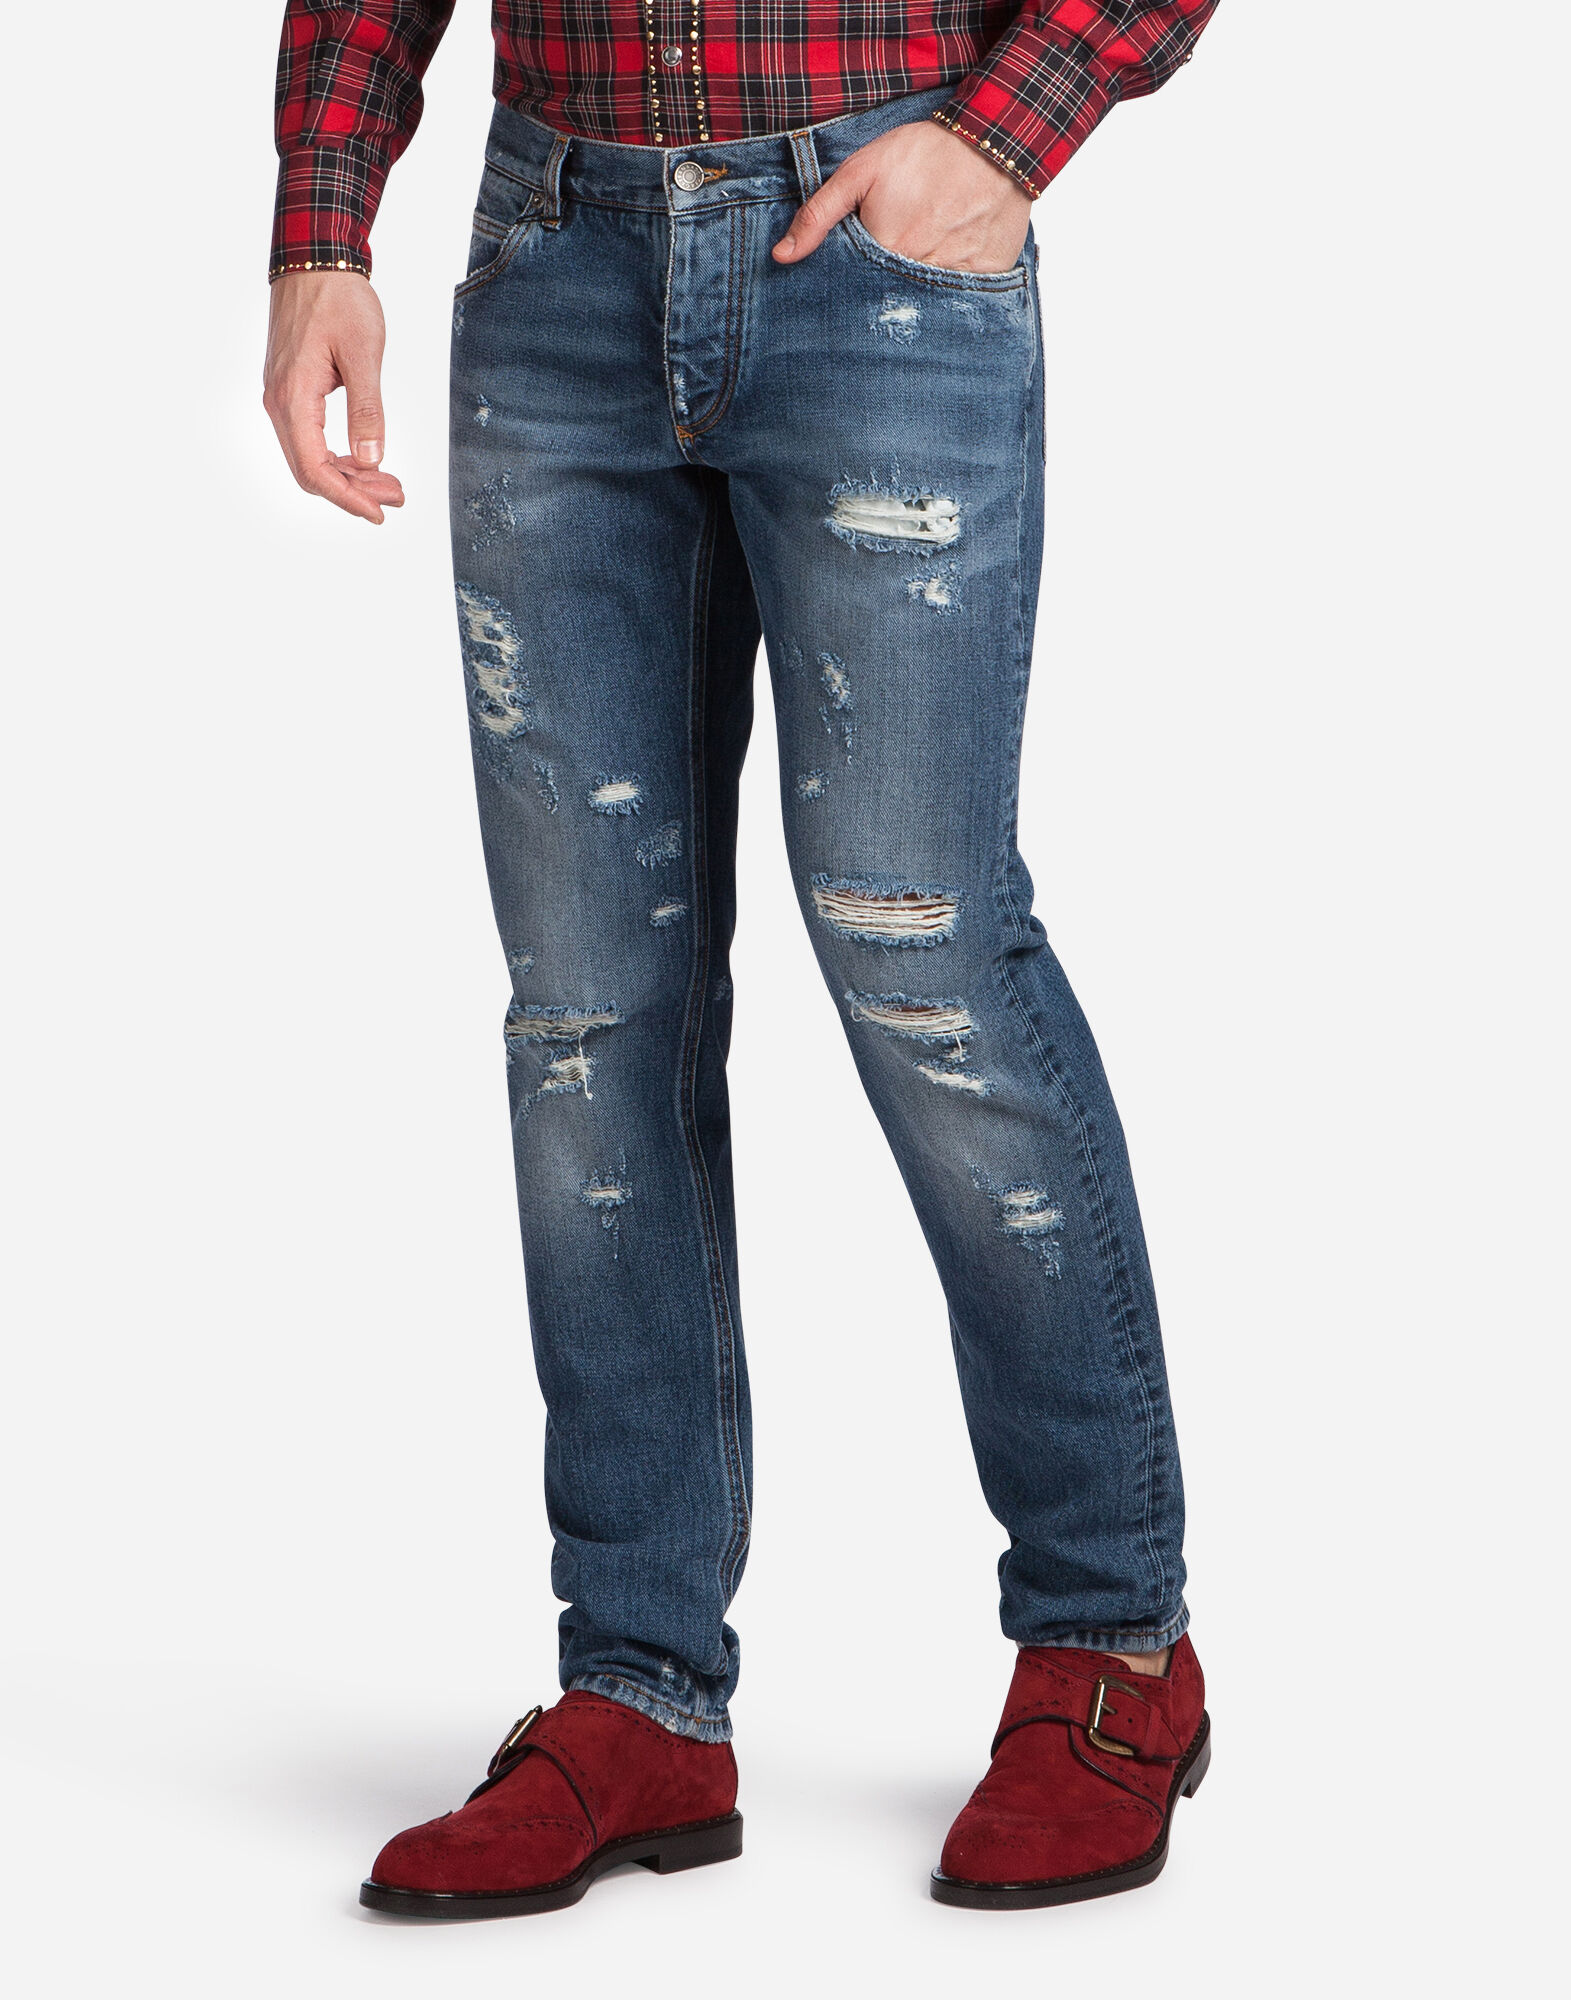 CLASSIC FIT JEANS WITH REAR PATCH